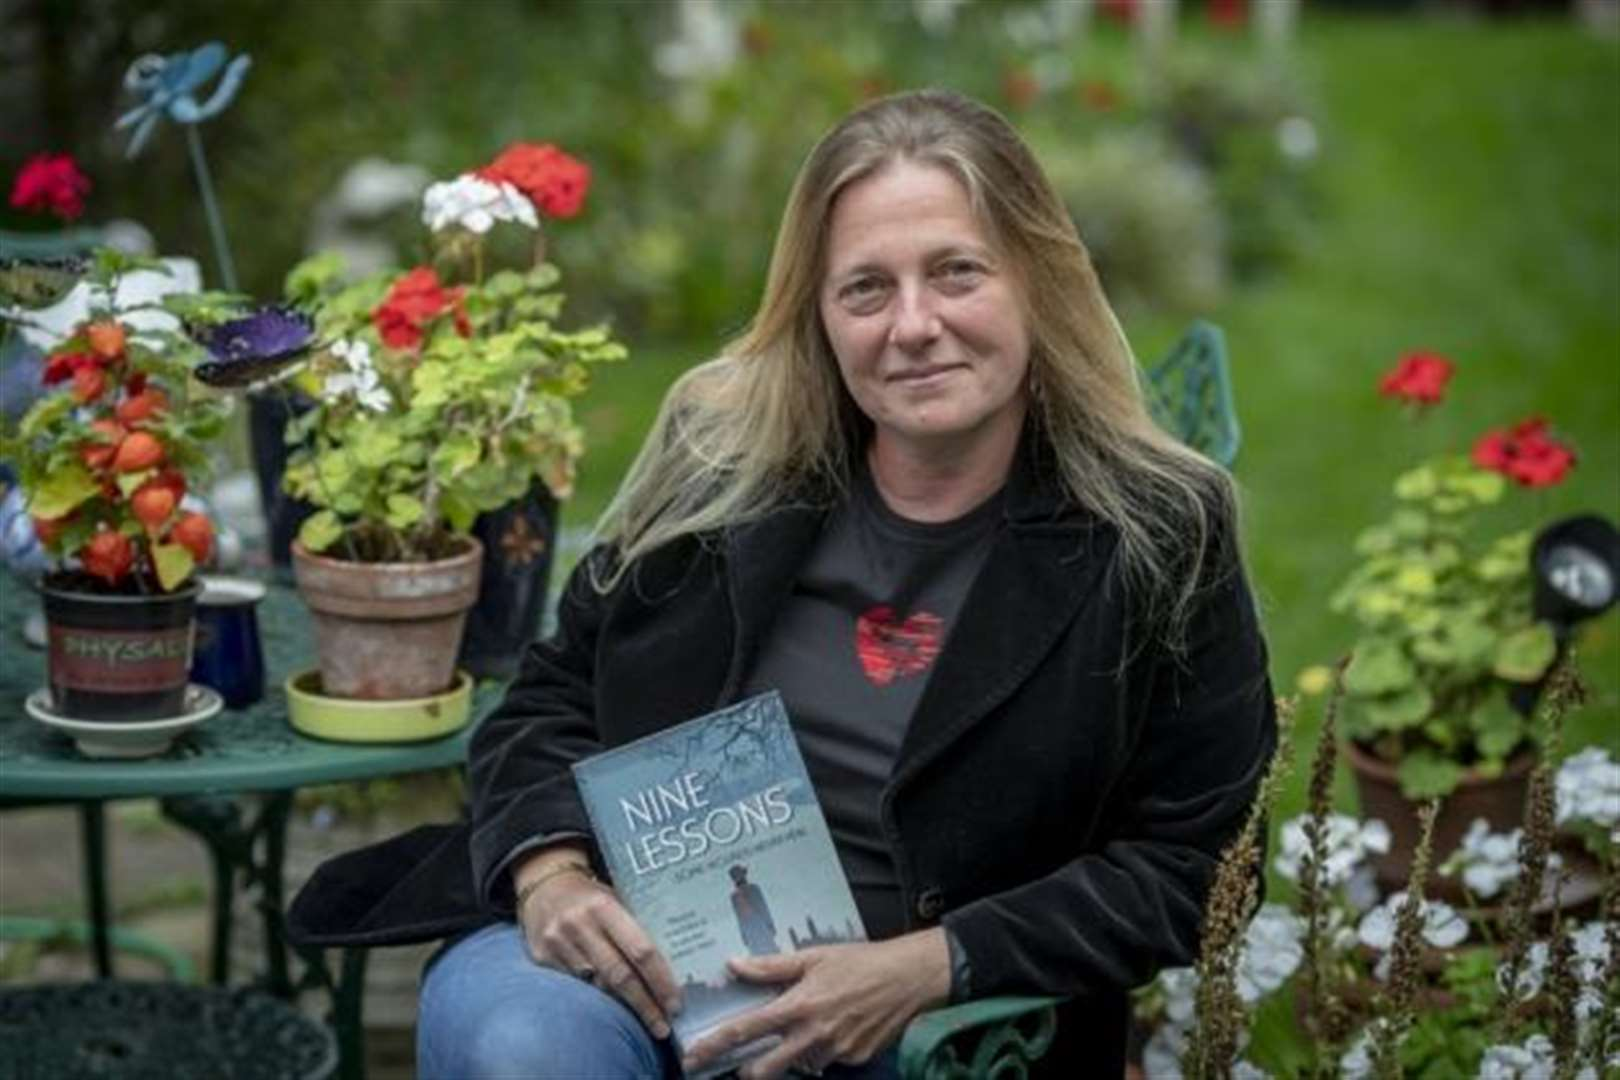 Cambridge author Nicola Upson to give talk on the true crime that inspired her latest book